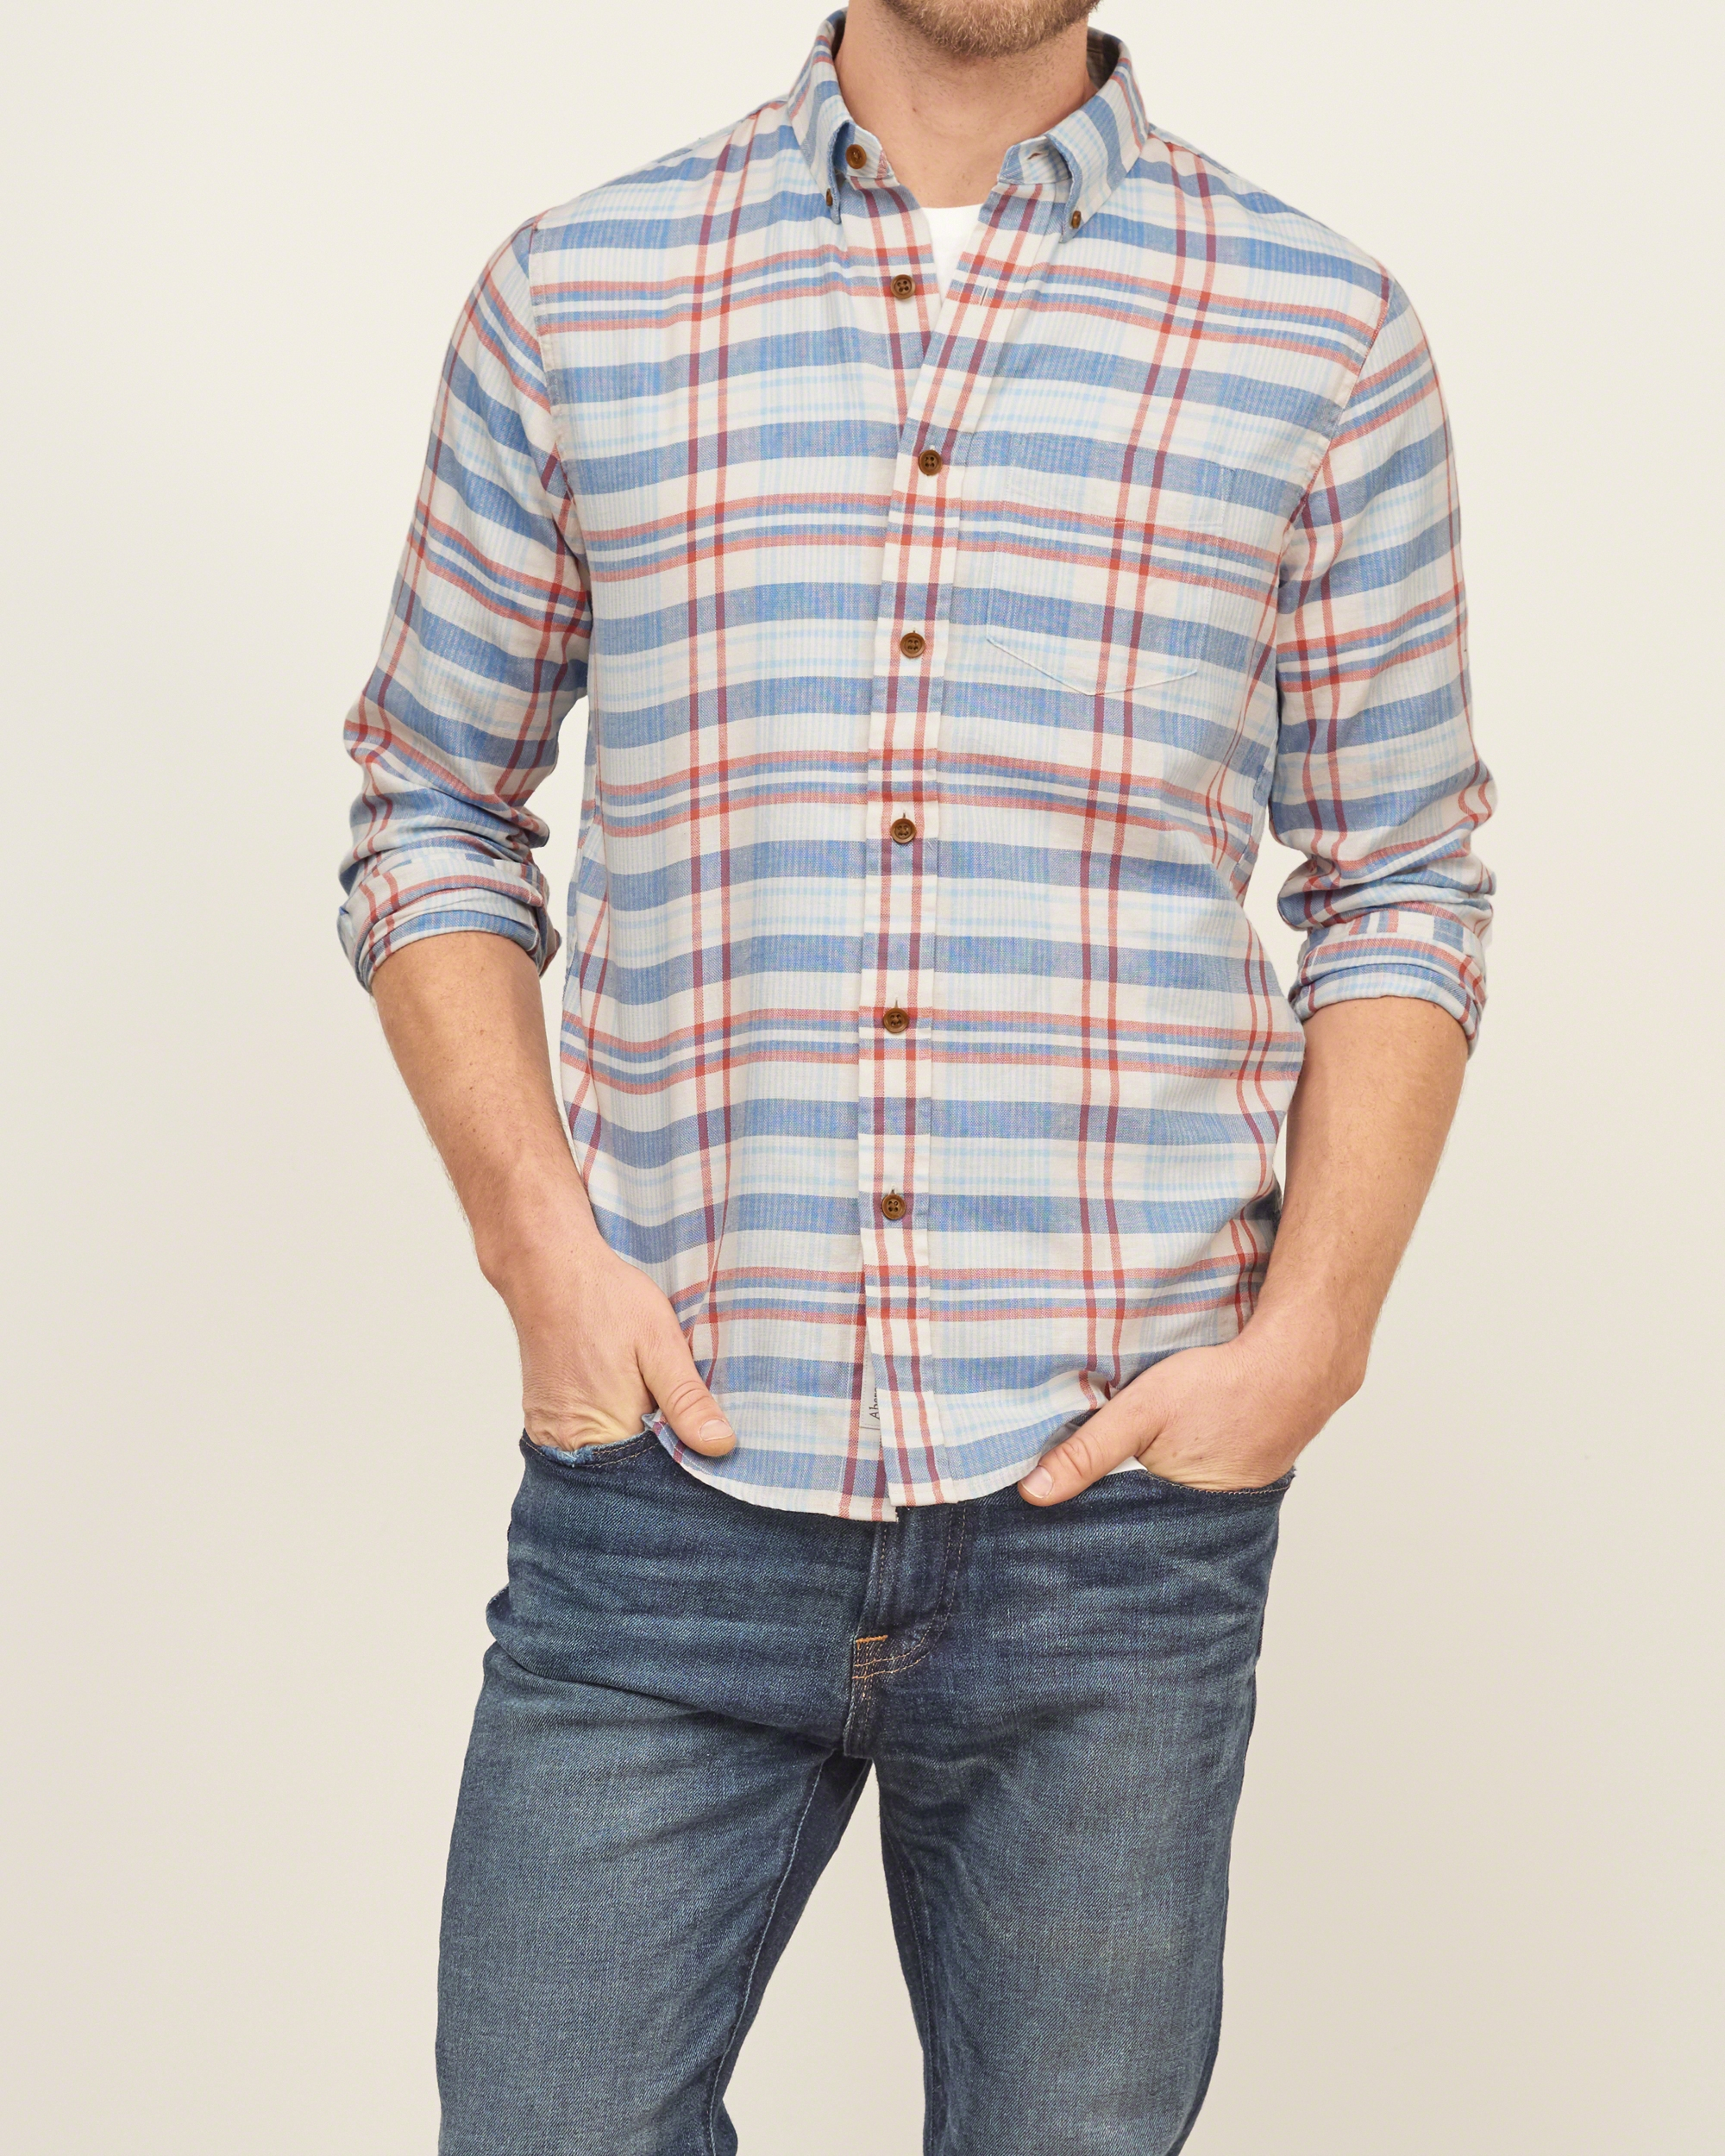 Lyst abercrombie fitch madras plaid shirt in blue for men for Mens madras shirt sale